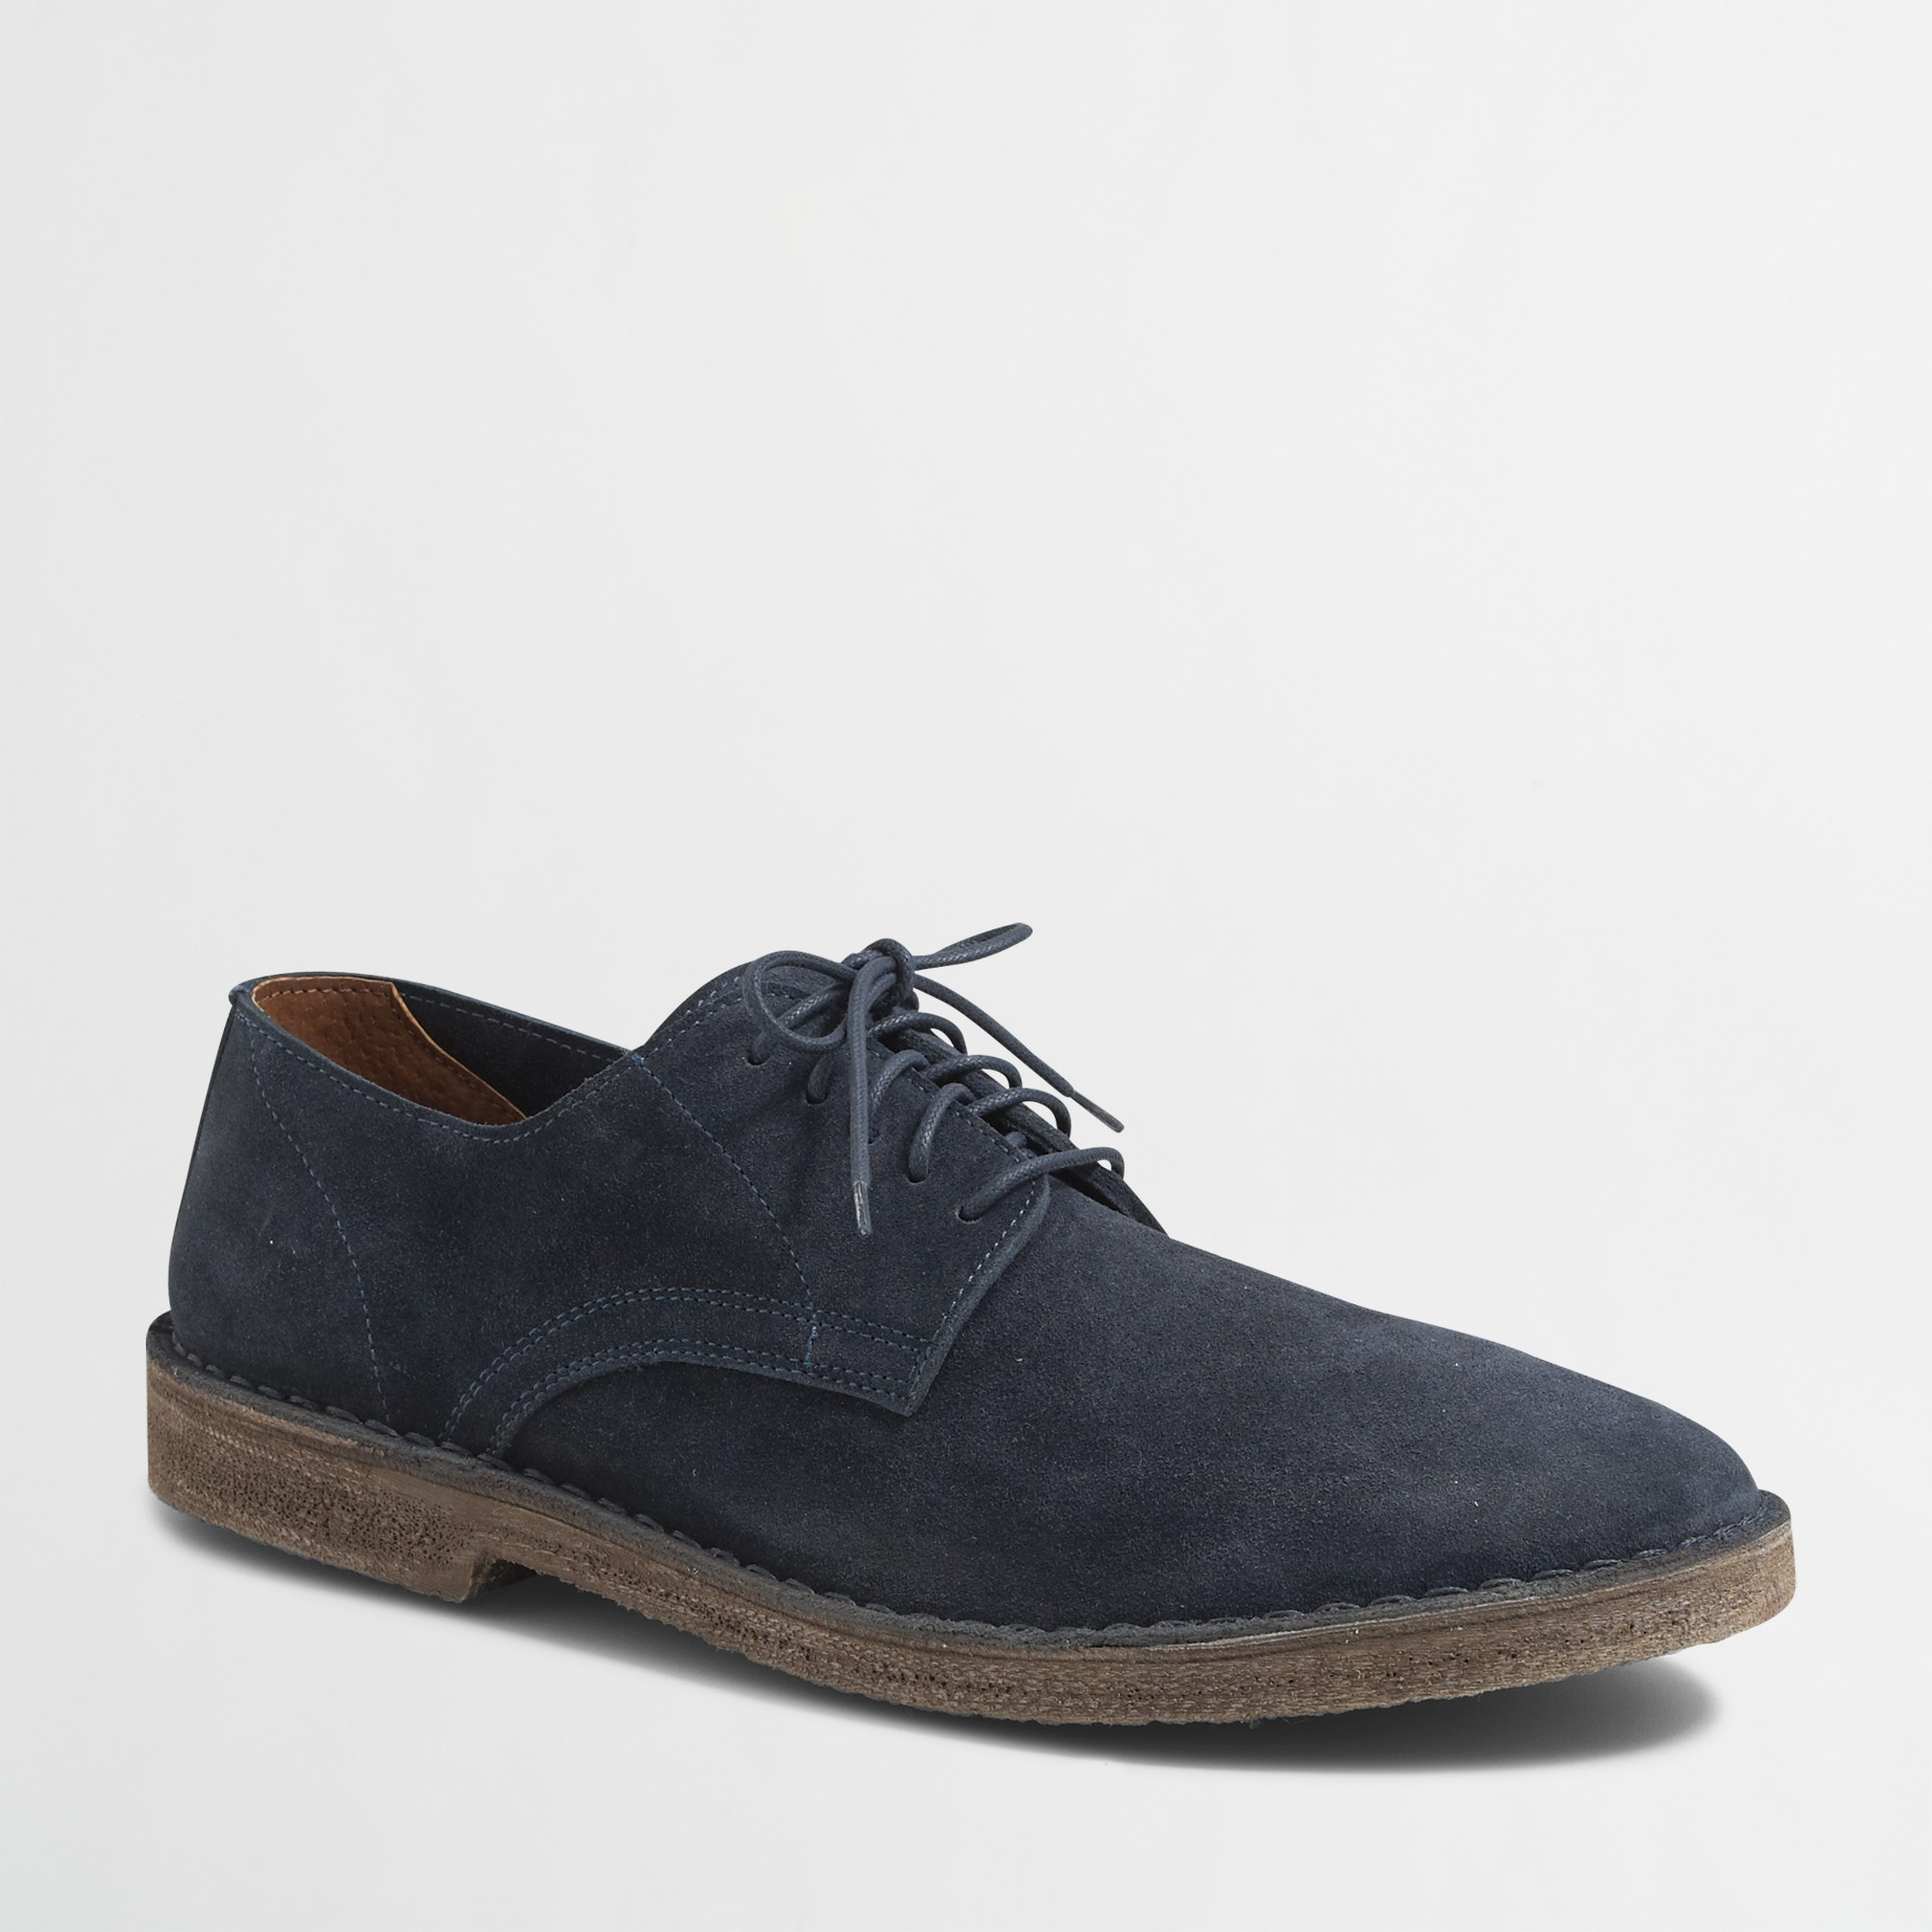 calvert suede oxfords : factorymen shoes